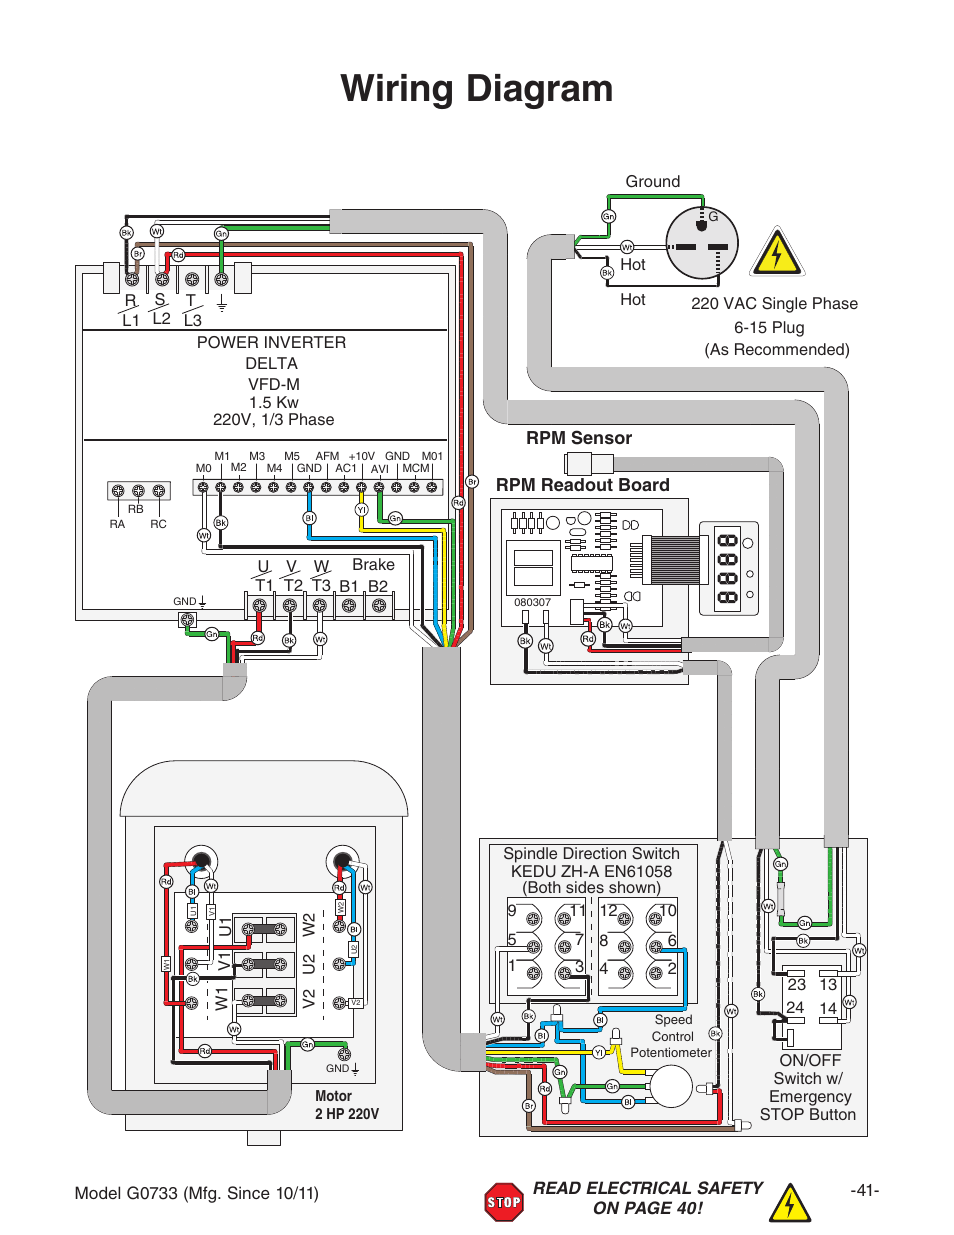 220v single phase plug wiring diagram clio 2 airbag diagram, rpm sensor readout board | grizzly 18